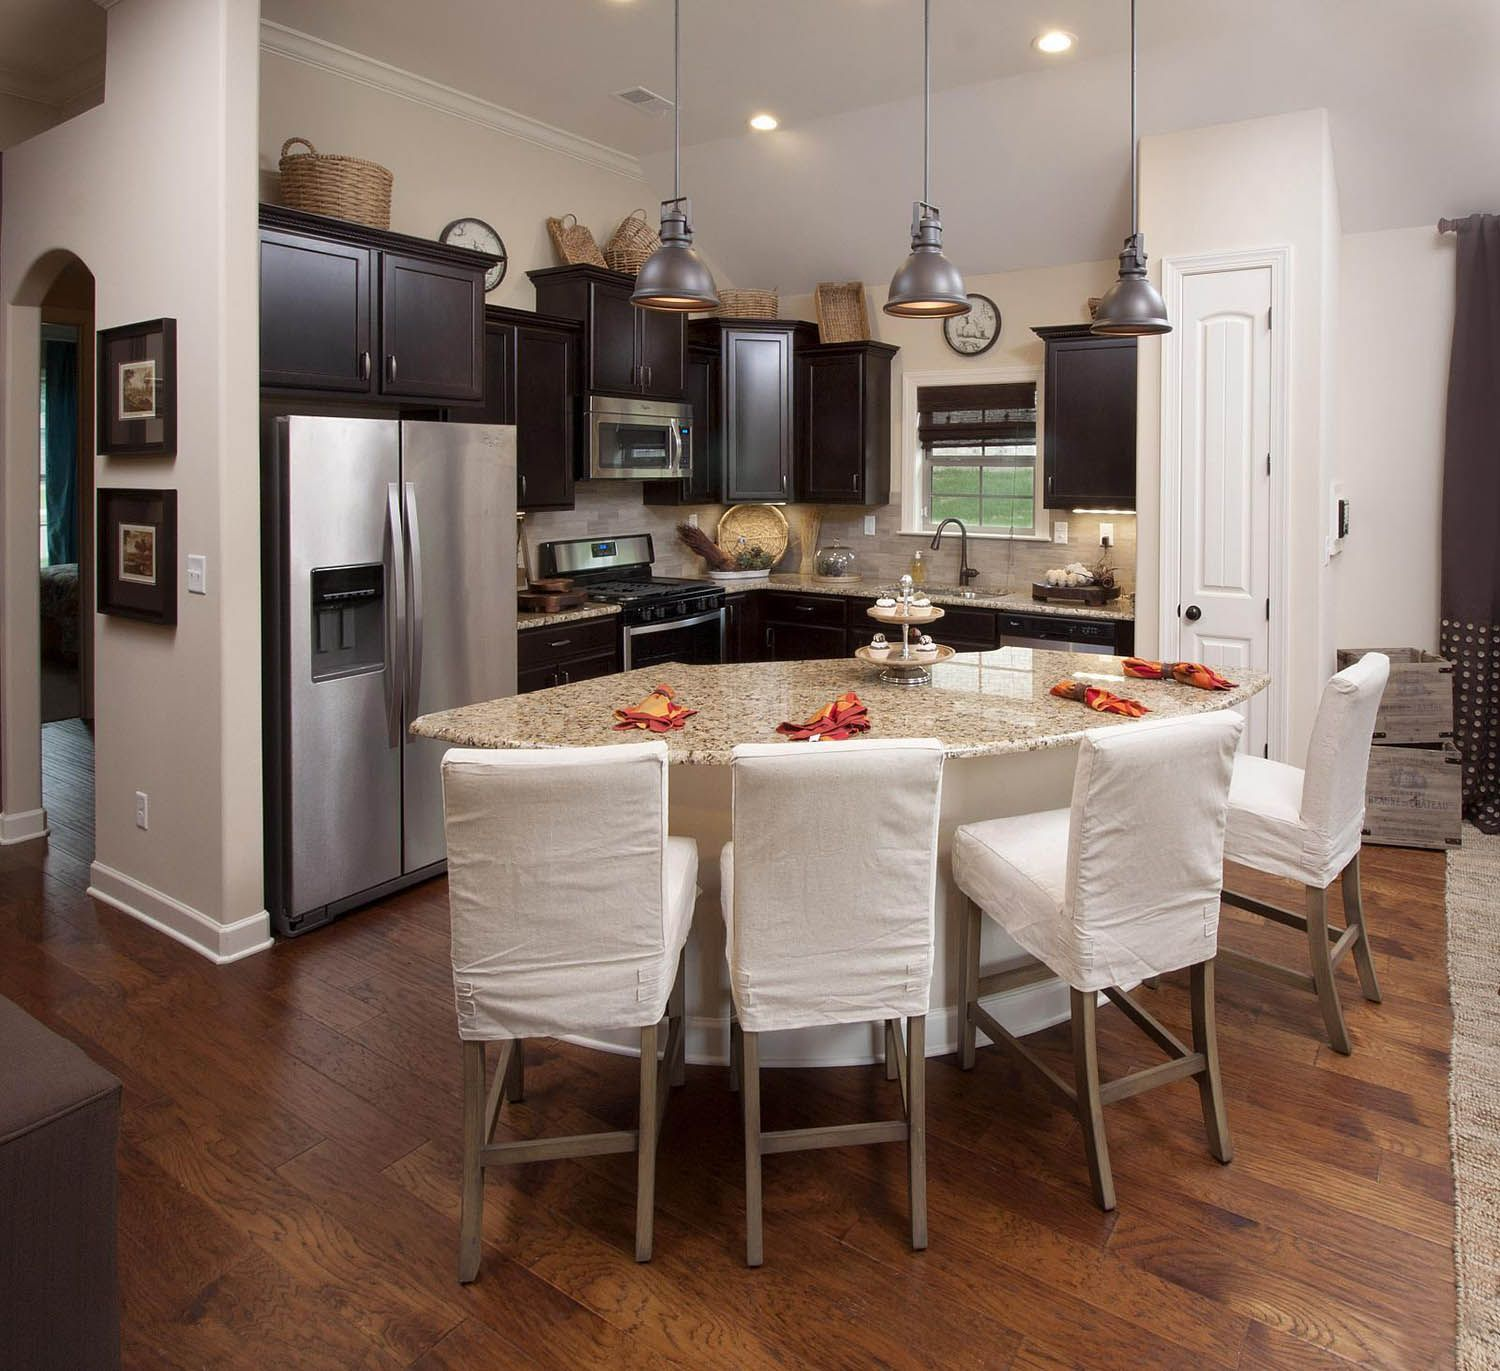 Kitchen Cabinets Oakland Ca: Villages Of Riverwood New Homes In Oakland TN By Regency